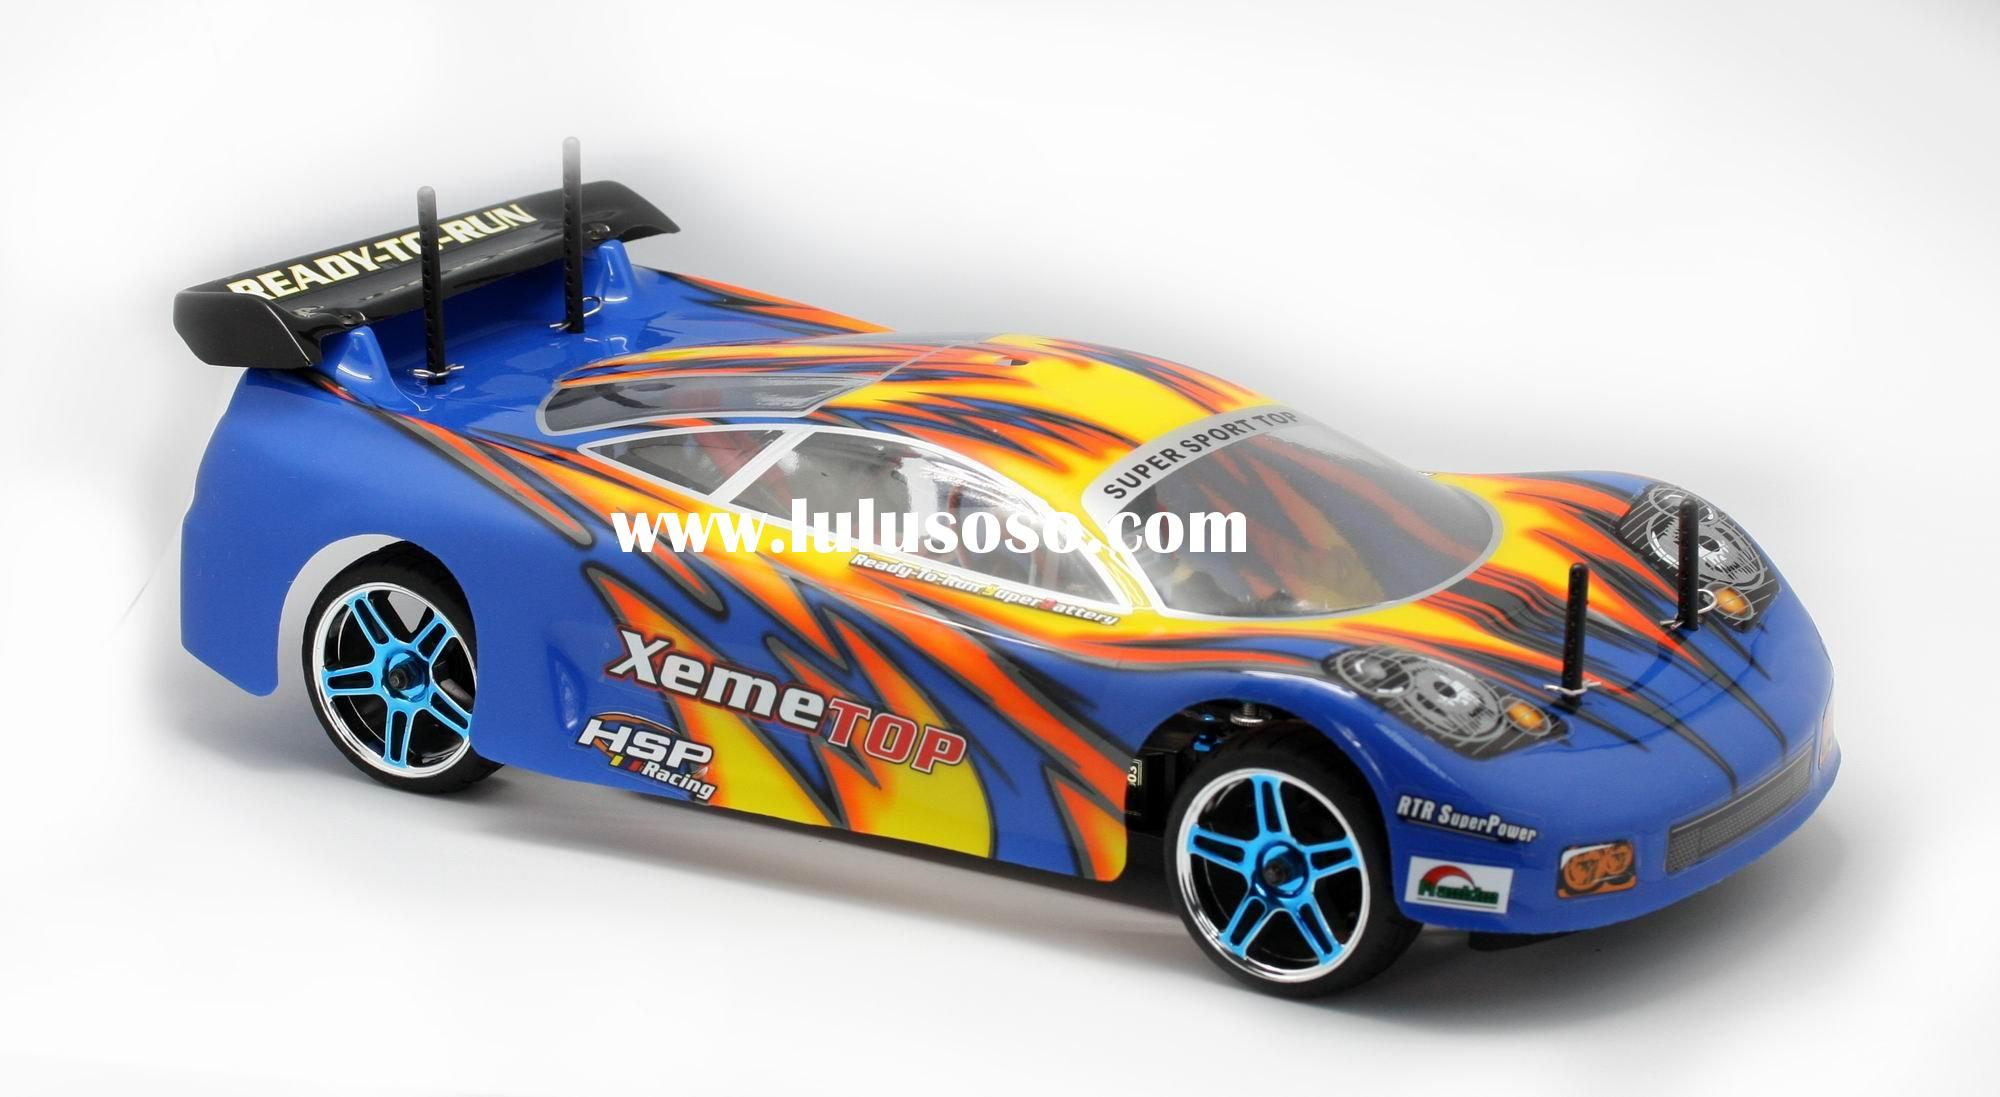 1/10th scale EP monster TOP version Brushless rc drift car